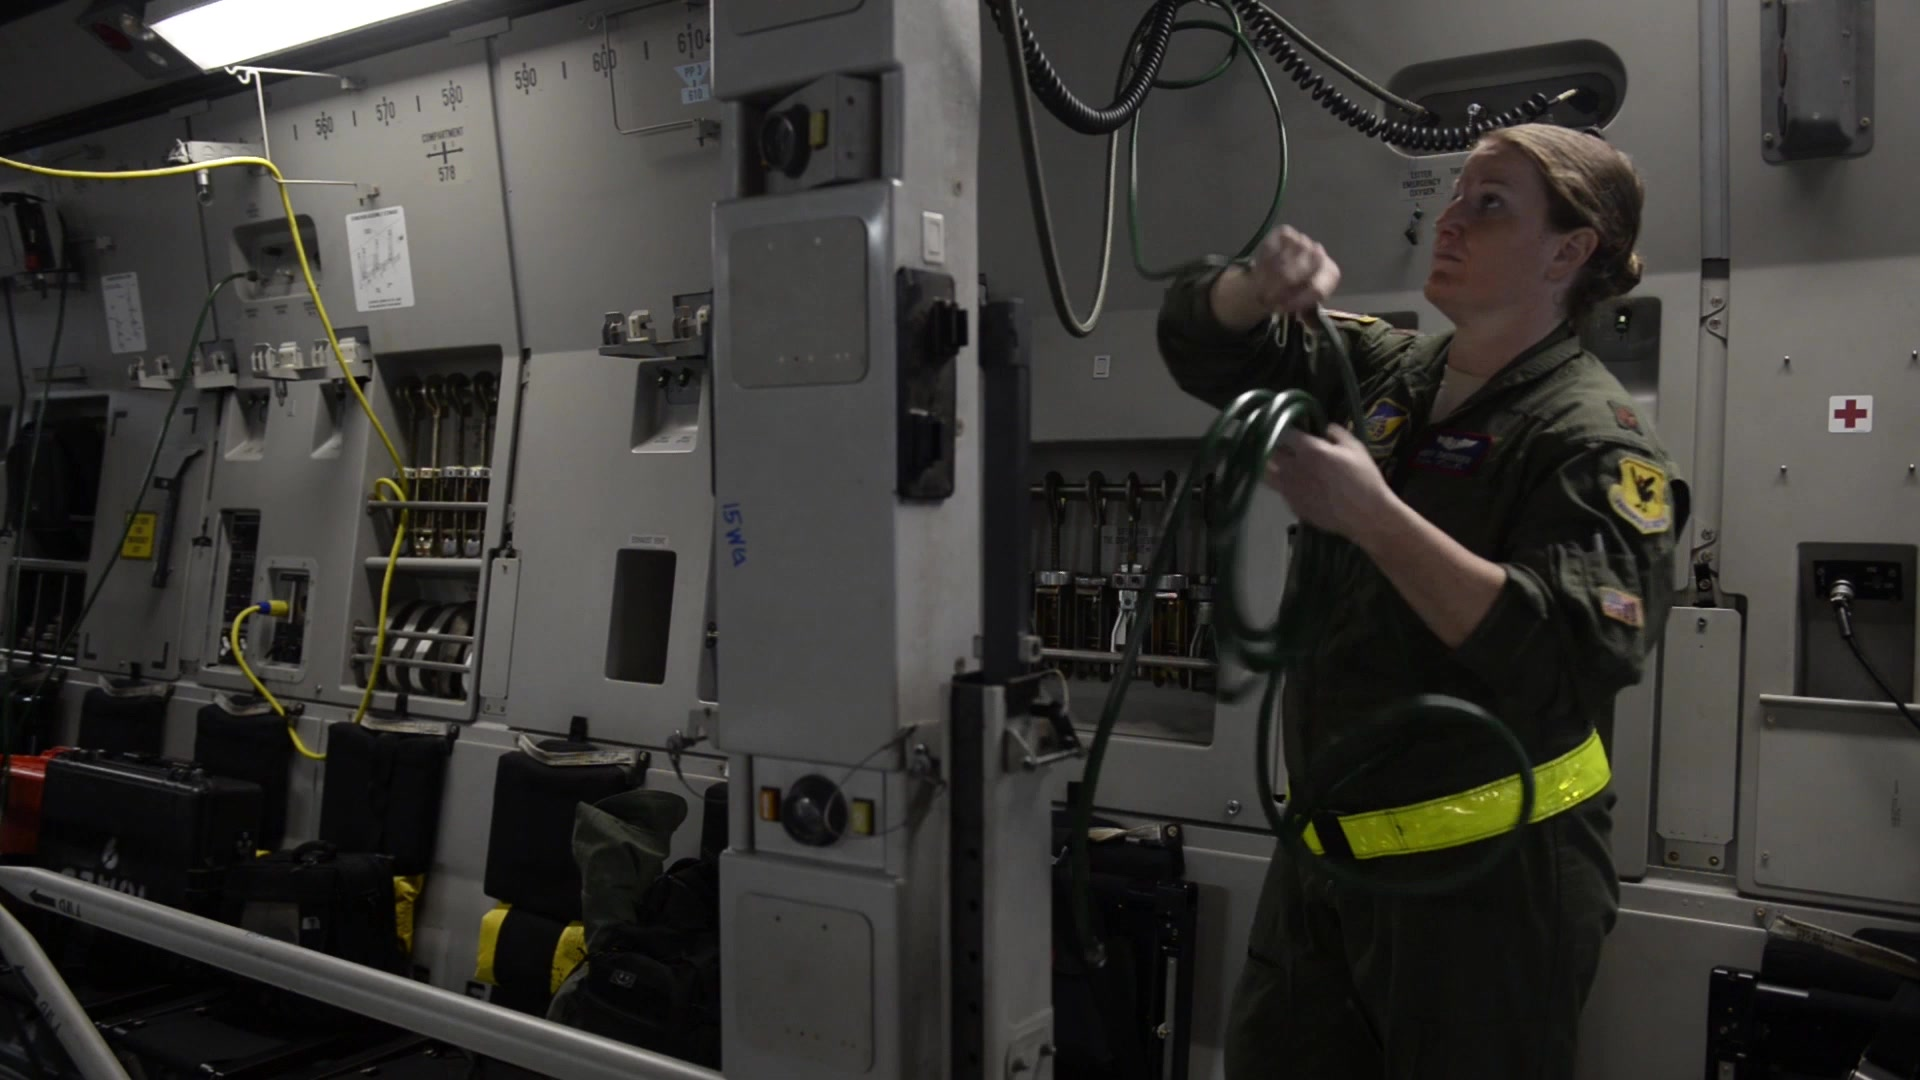 Critical situations call for critical thinking. Airman First Class Thomas Barley introduces us to team kadena's Critical Care Transport Team whose quick thinking is saving lives.